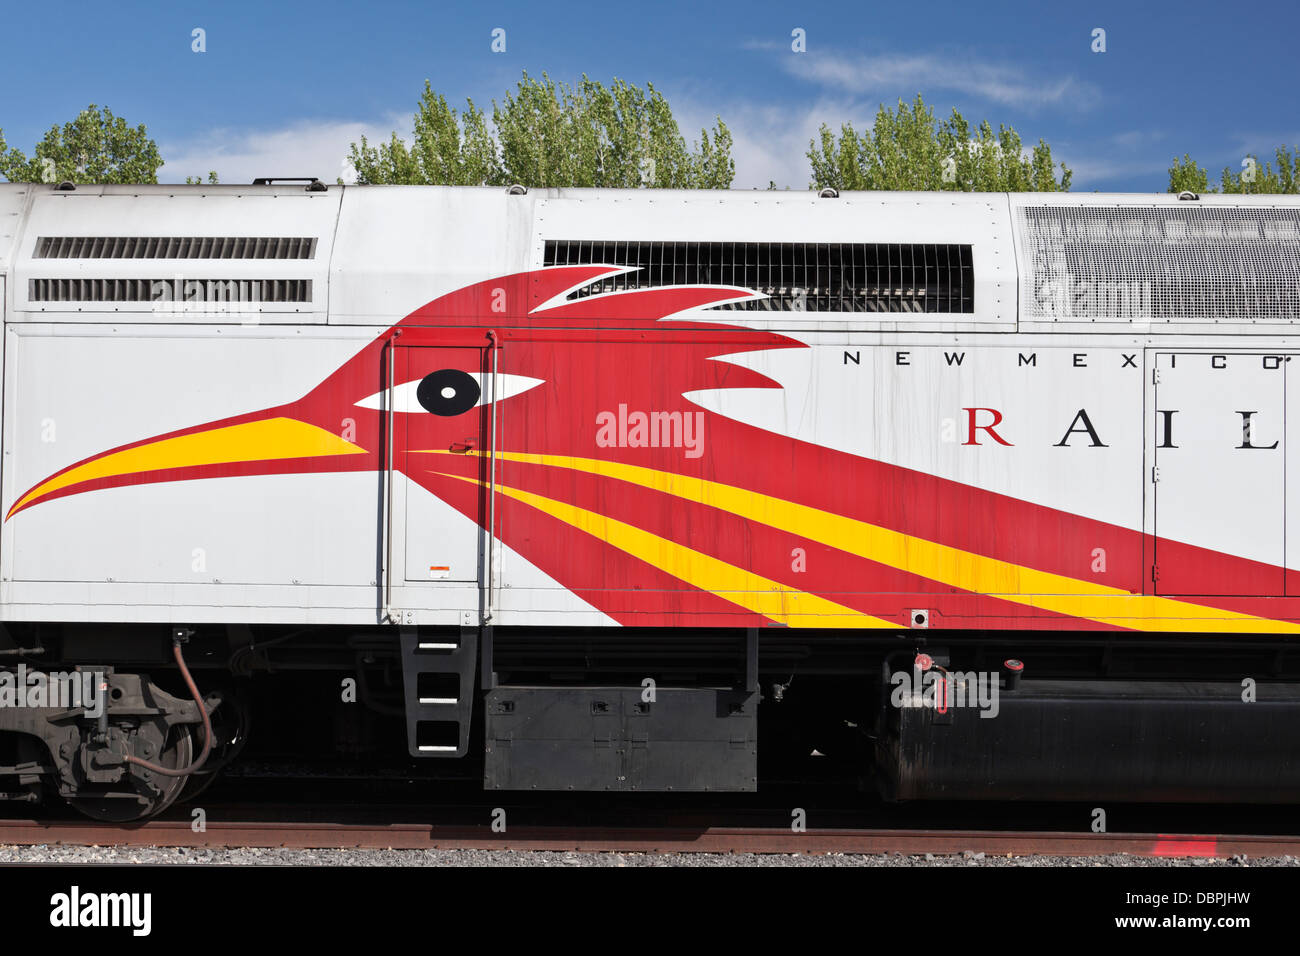 Roadrunner train, Railyard District, Santa Fe, New Mexico, USA. - Stock Image